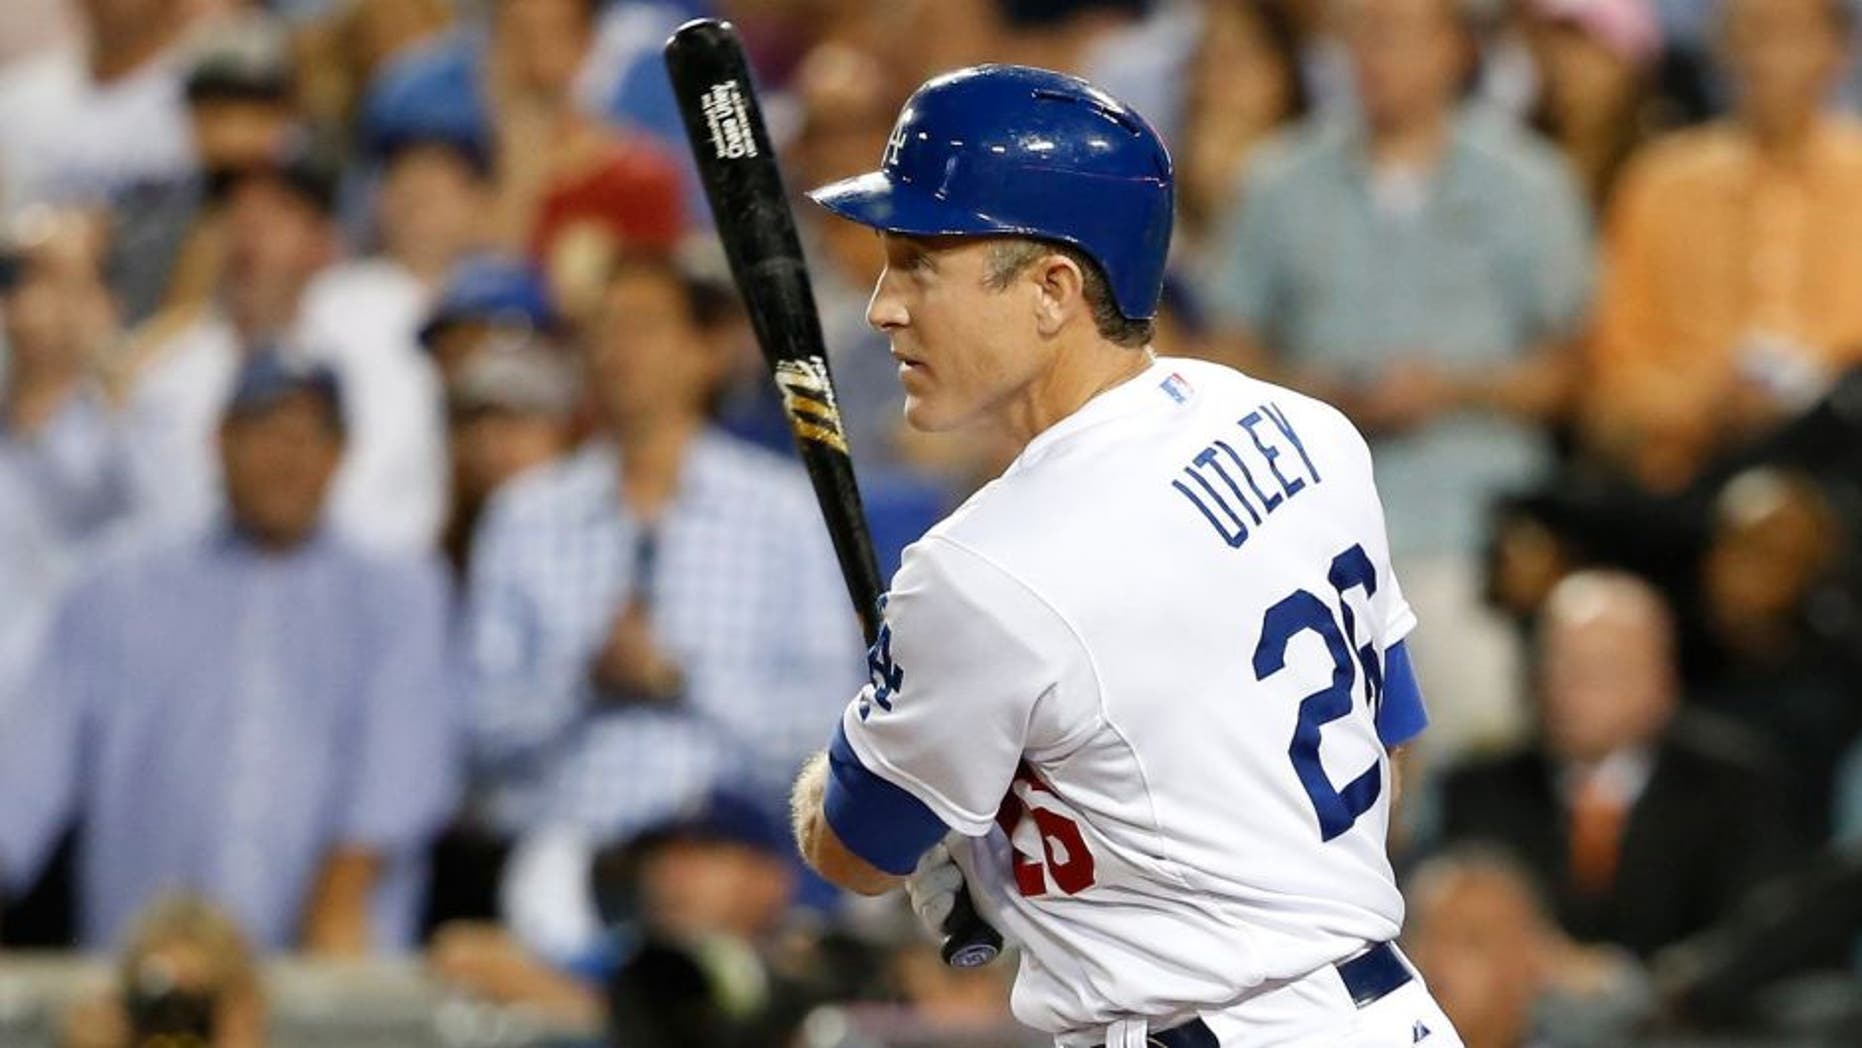 LOS ANGELES, CA - OCTOBER 15: Chase Utley #26 of the Los Angeles Dodgers flies out in the ninth inning while taking on the New York Mets in game five of the National League Division Series at Dodger Stadium on October 15, 2015 in Los Angeles, California. (Photo by Sean M. Haffey/Getty Images)